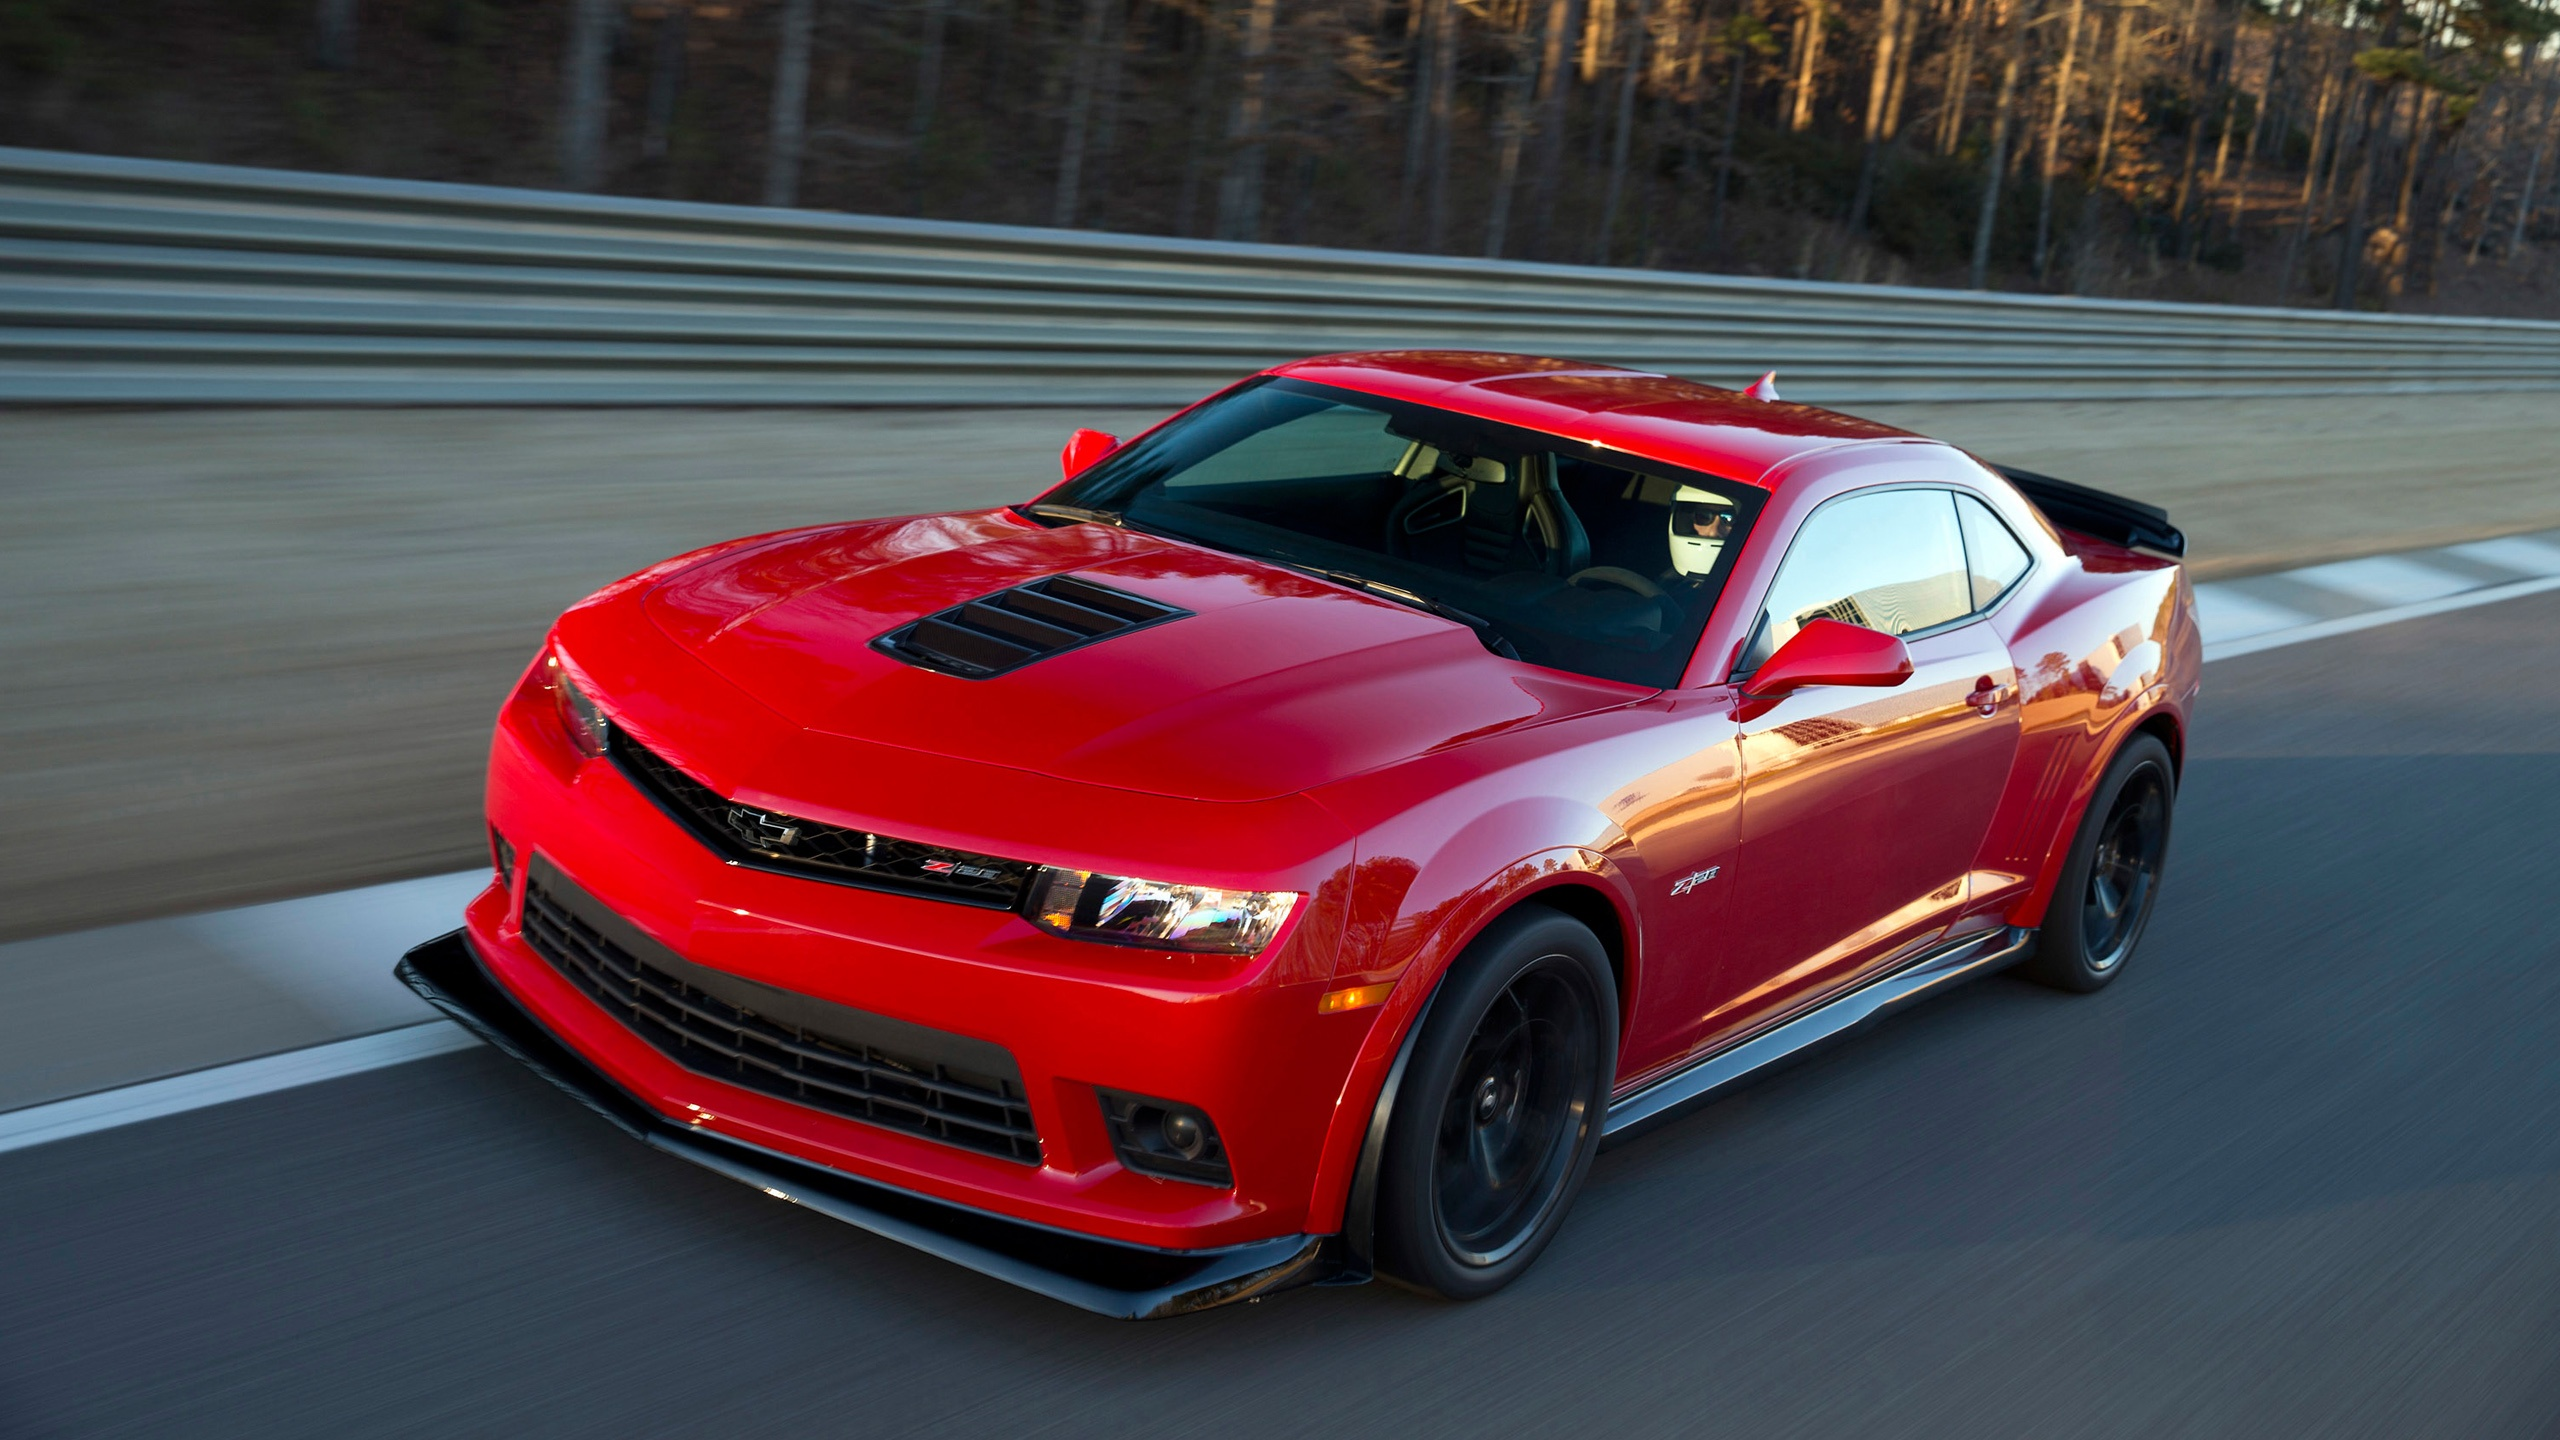 Chevrolet Camaro Z28 2014 Wallpaper HD Car Wallpapers 2560x1440